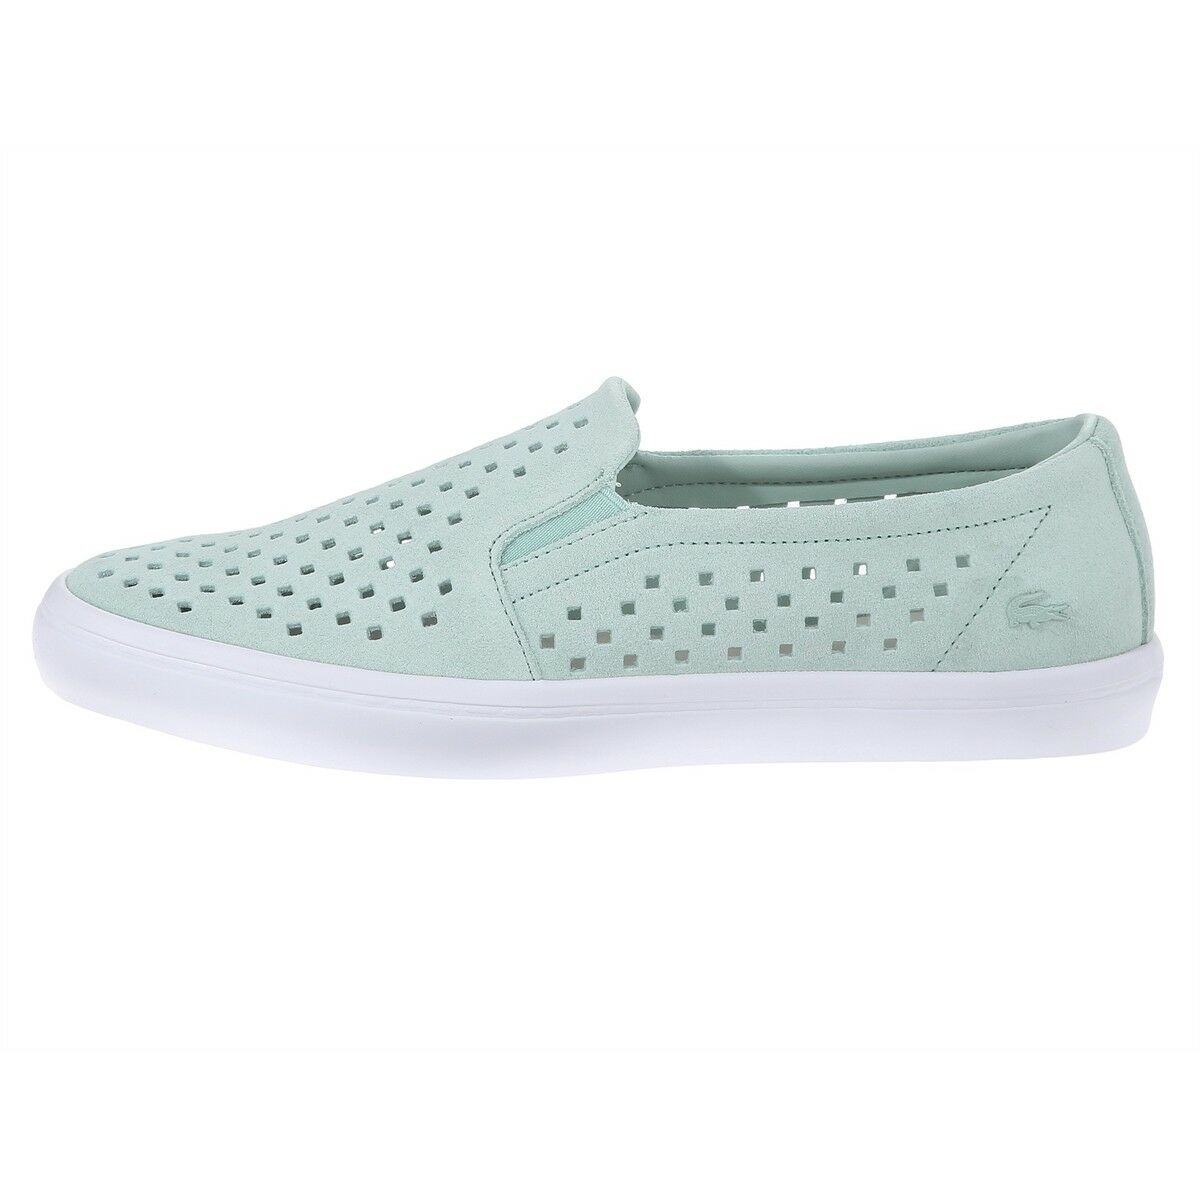 Lacoste Skate Shoes Women Gazon Slip-On NEW Sneakers Leather Casual Slip-On Gazon 4701ad